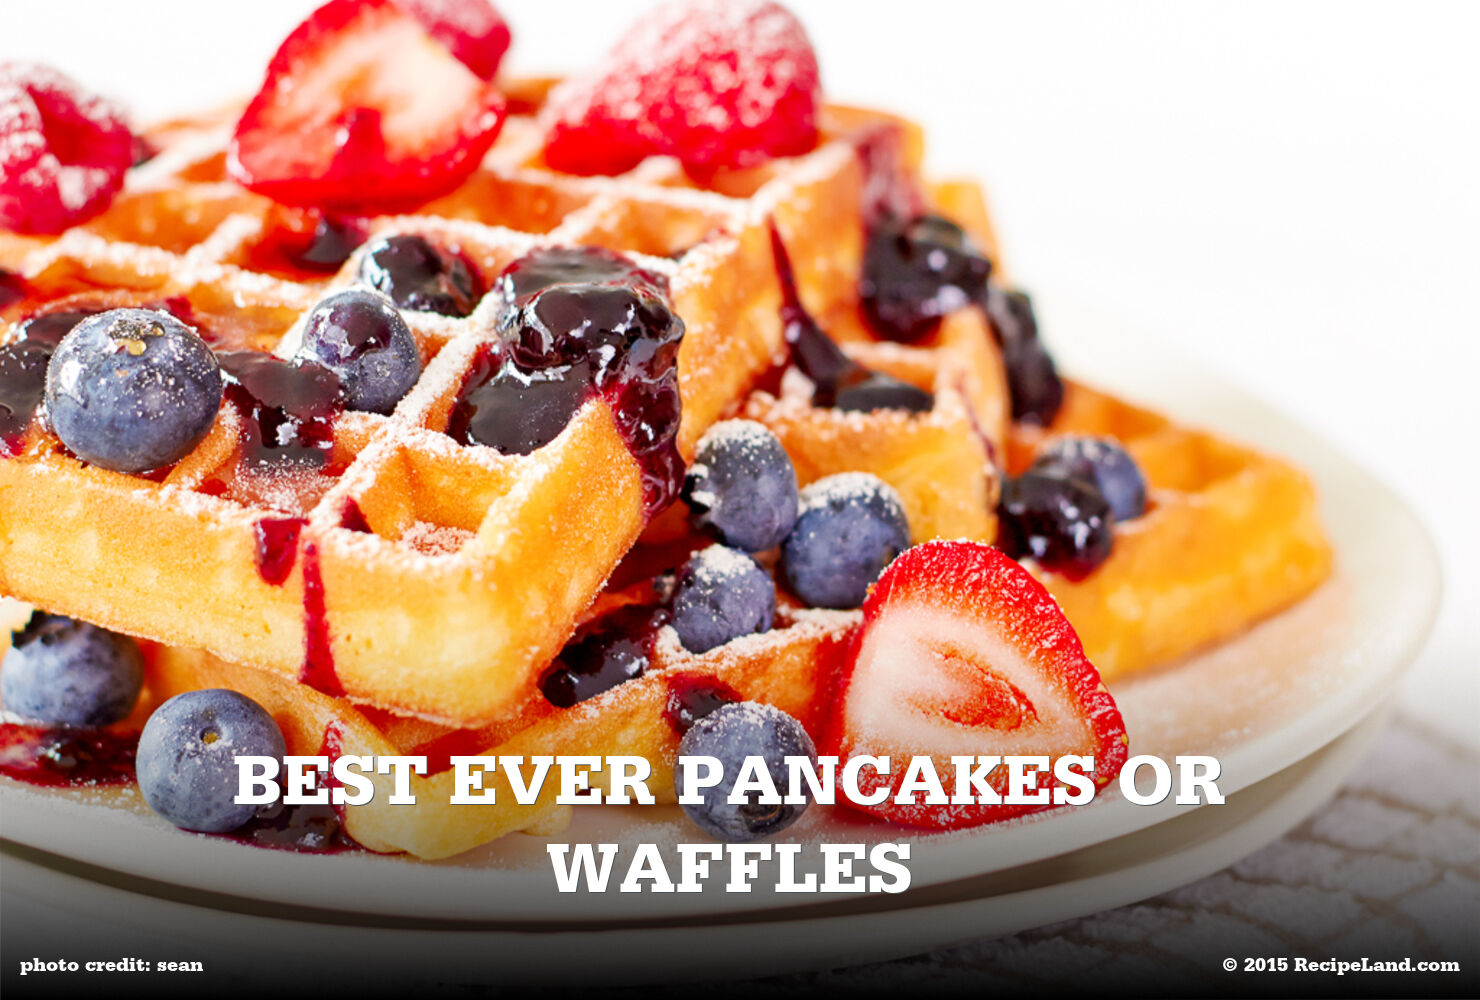 Best Ever Pancakes or Waffles